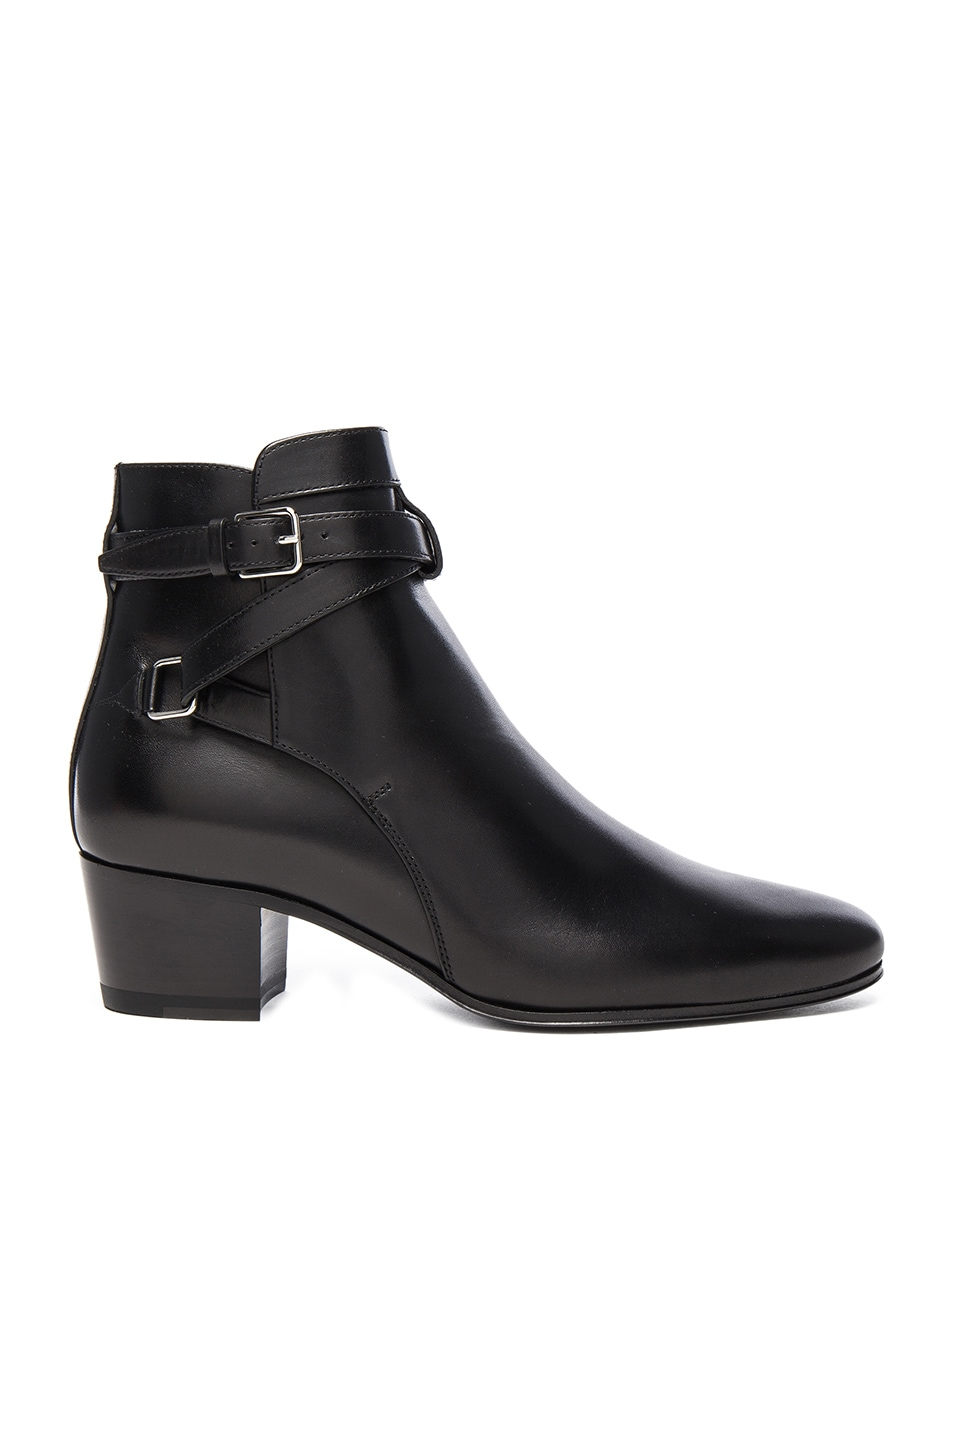 Image 1 of Saint Laurent Leather Blake Buckle Boots in Black